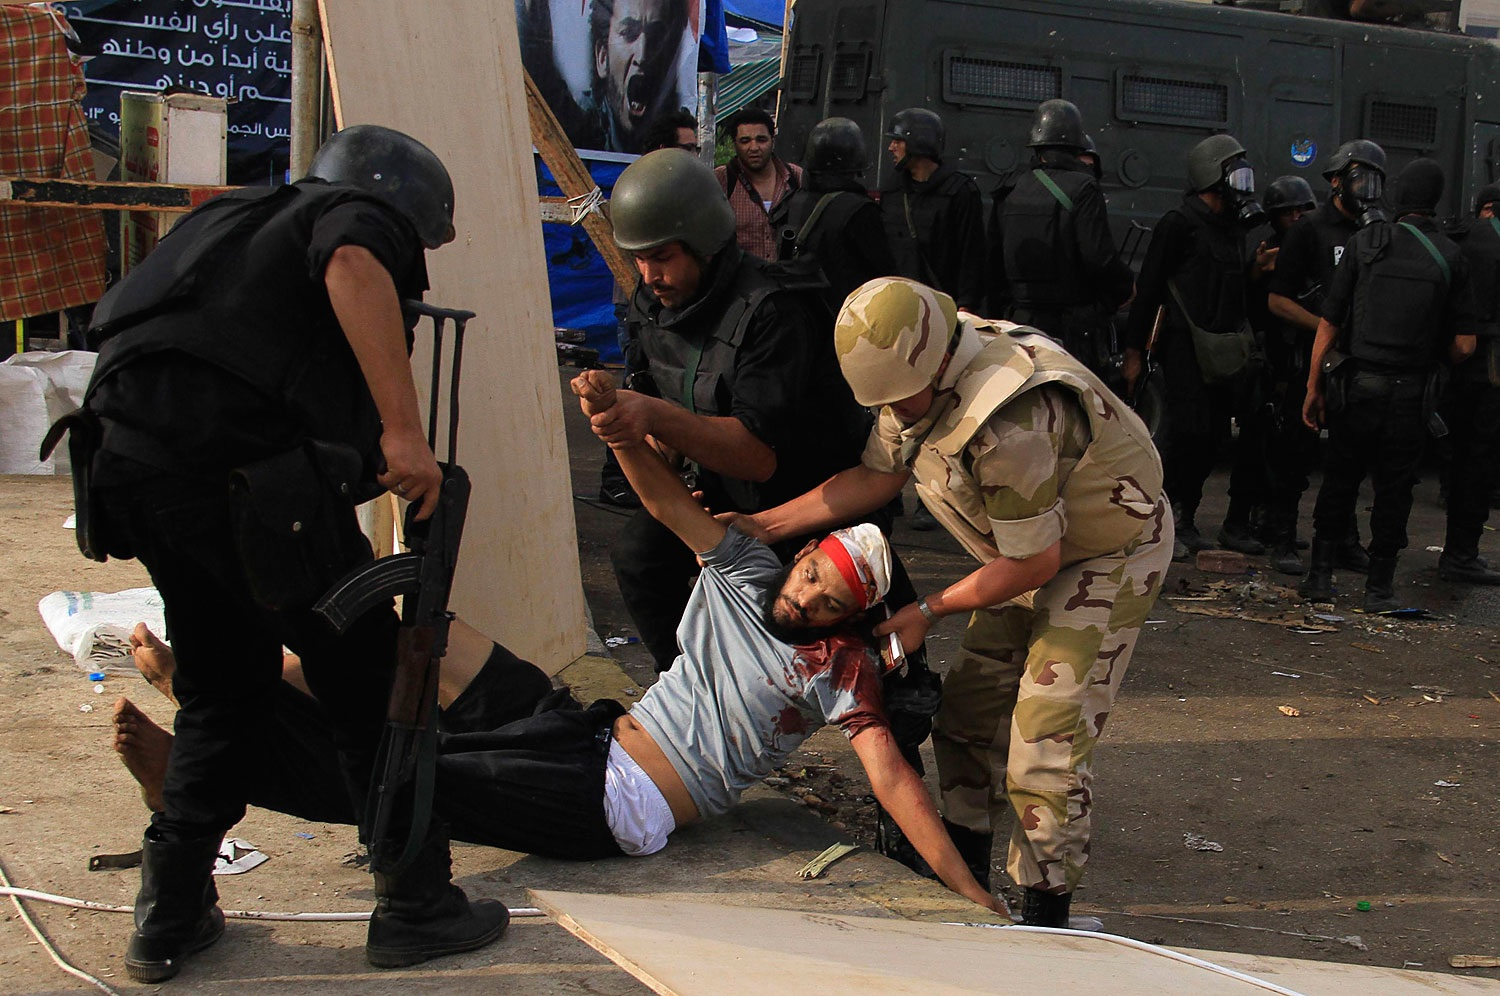 An injured member of the Muslim Brotherhood and supporter of deposed Egyptian President Mohamed Mursi is carried by members of the riot police and the army after they cleared Rabaa Adawiya square area, where the Pro-Mursi supporters are camping, in Cairo